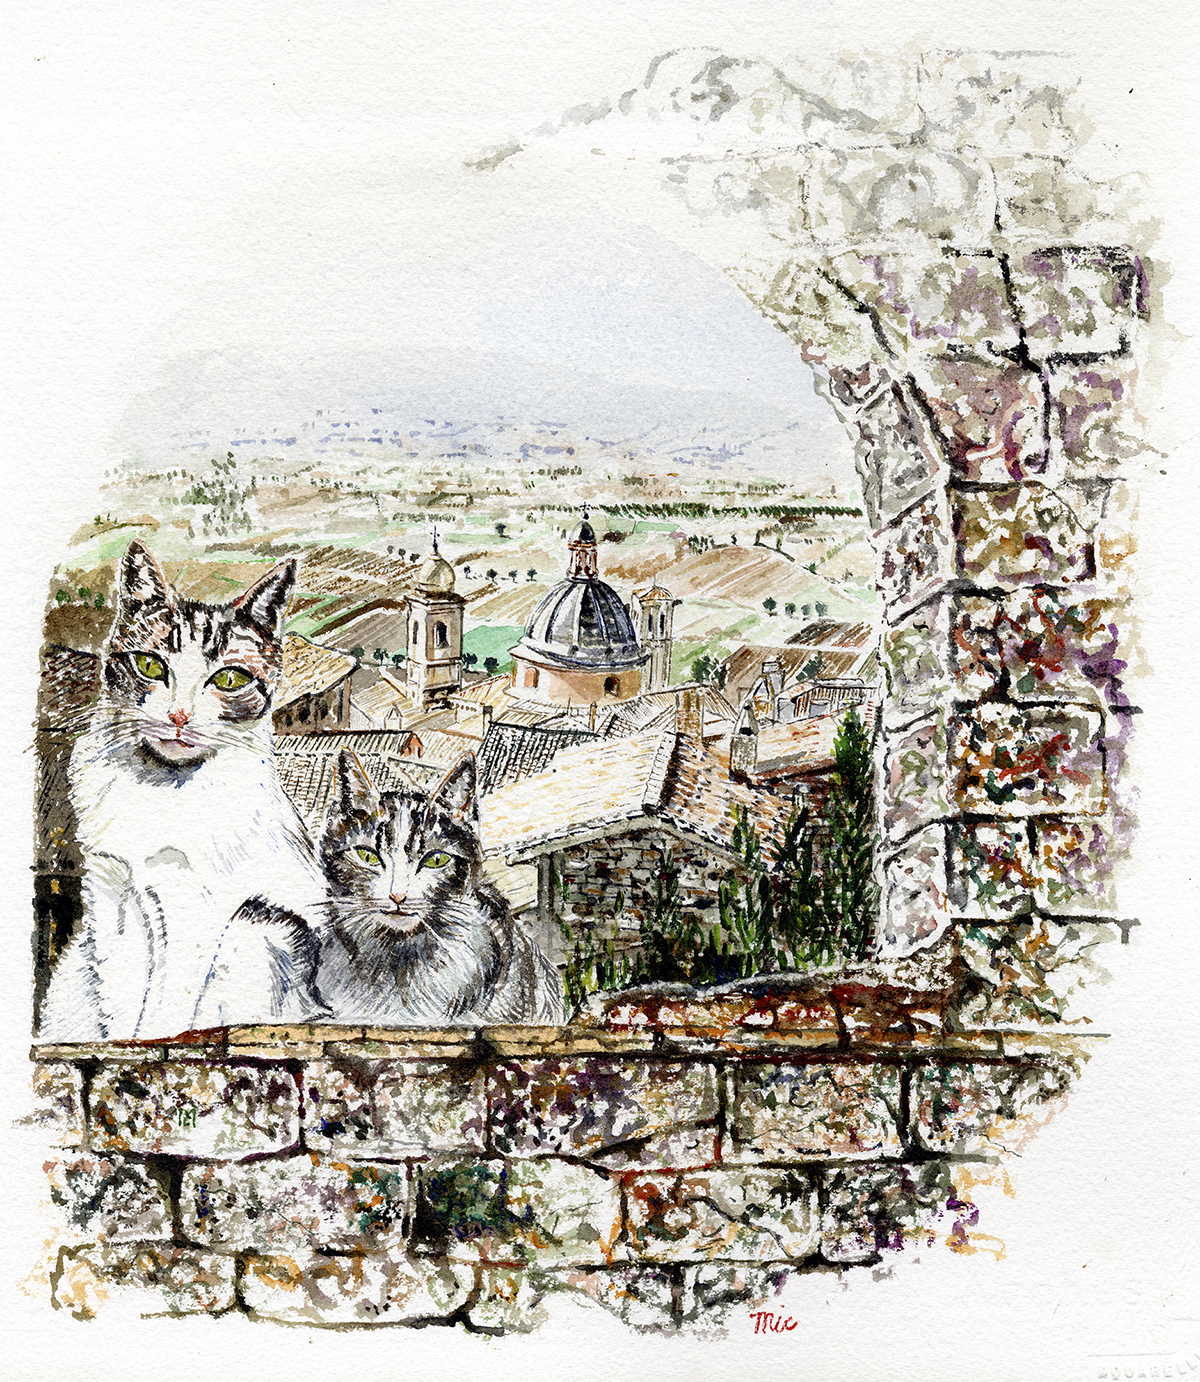 Brother and Sister Cat in Assisi - Water Color Private Collection Coby and Nancy MartinGiclee Limited Edition and canvas prints are available. Please visit the prints gallery.